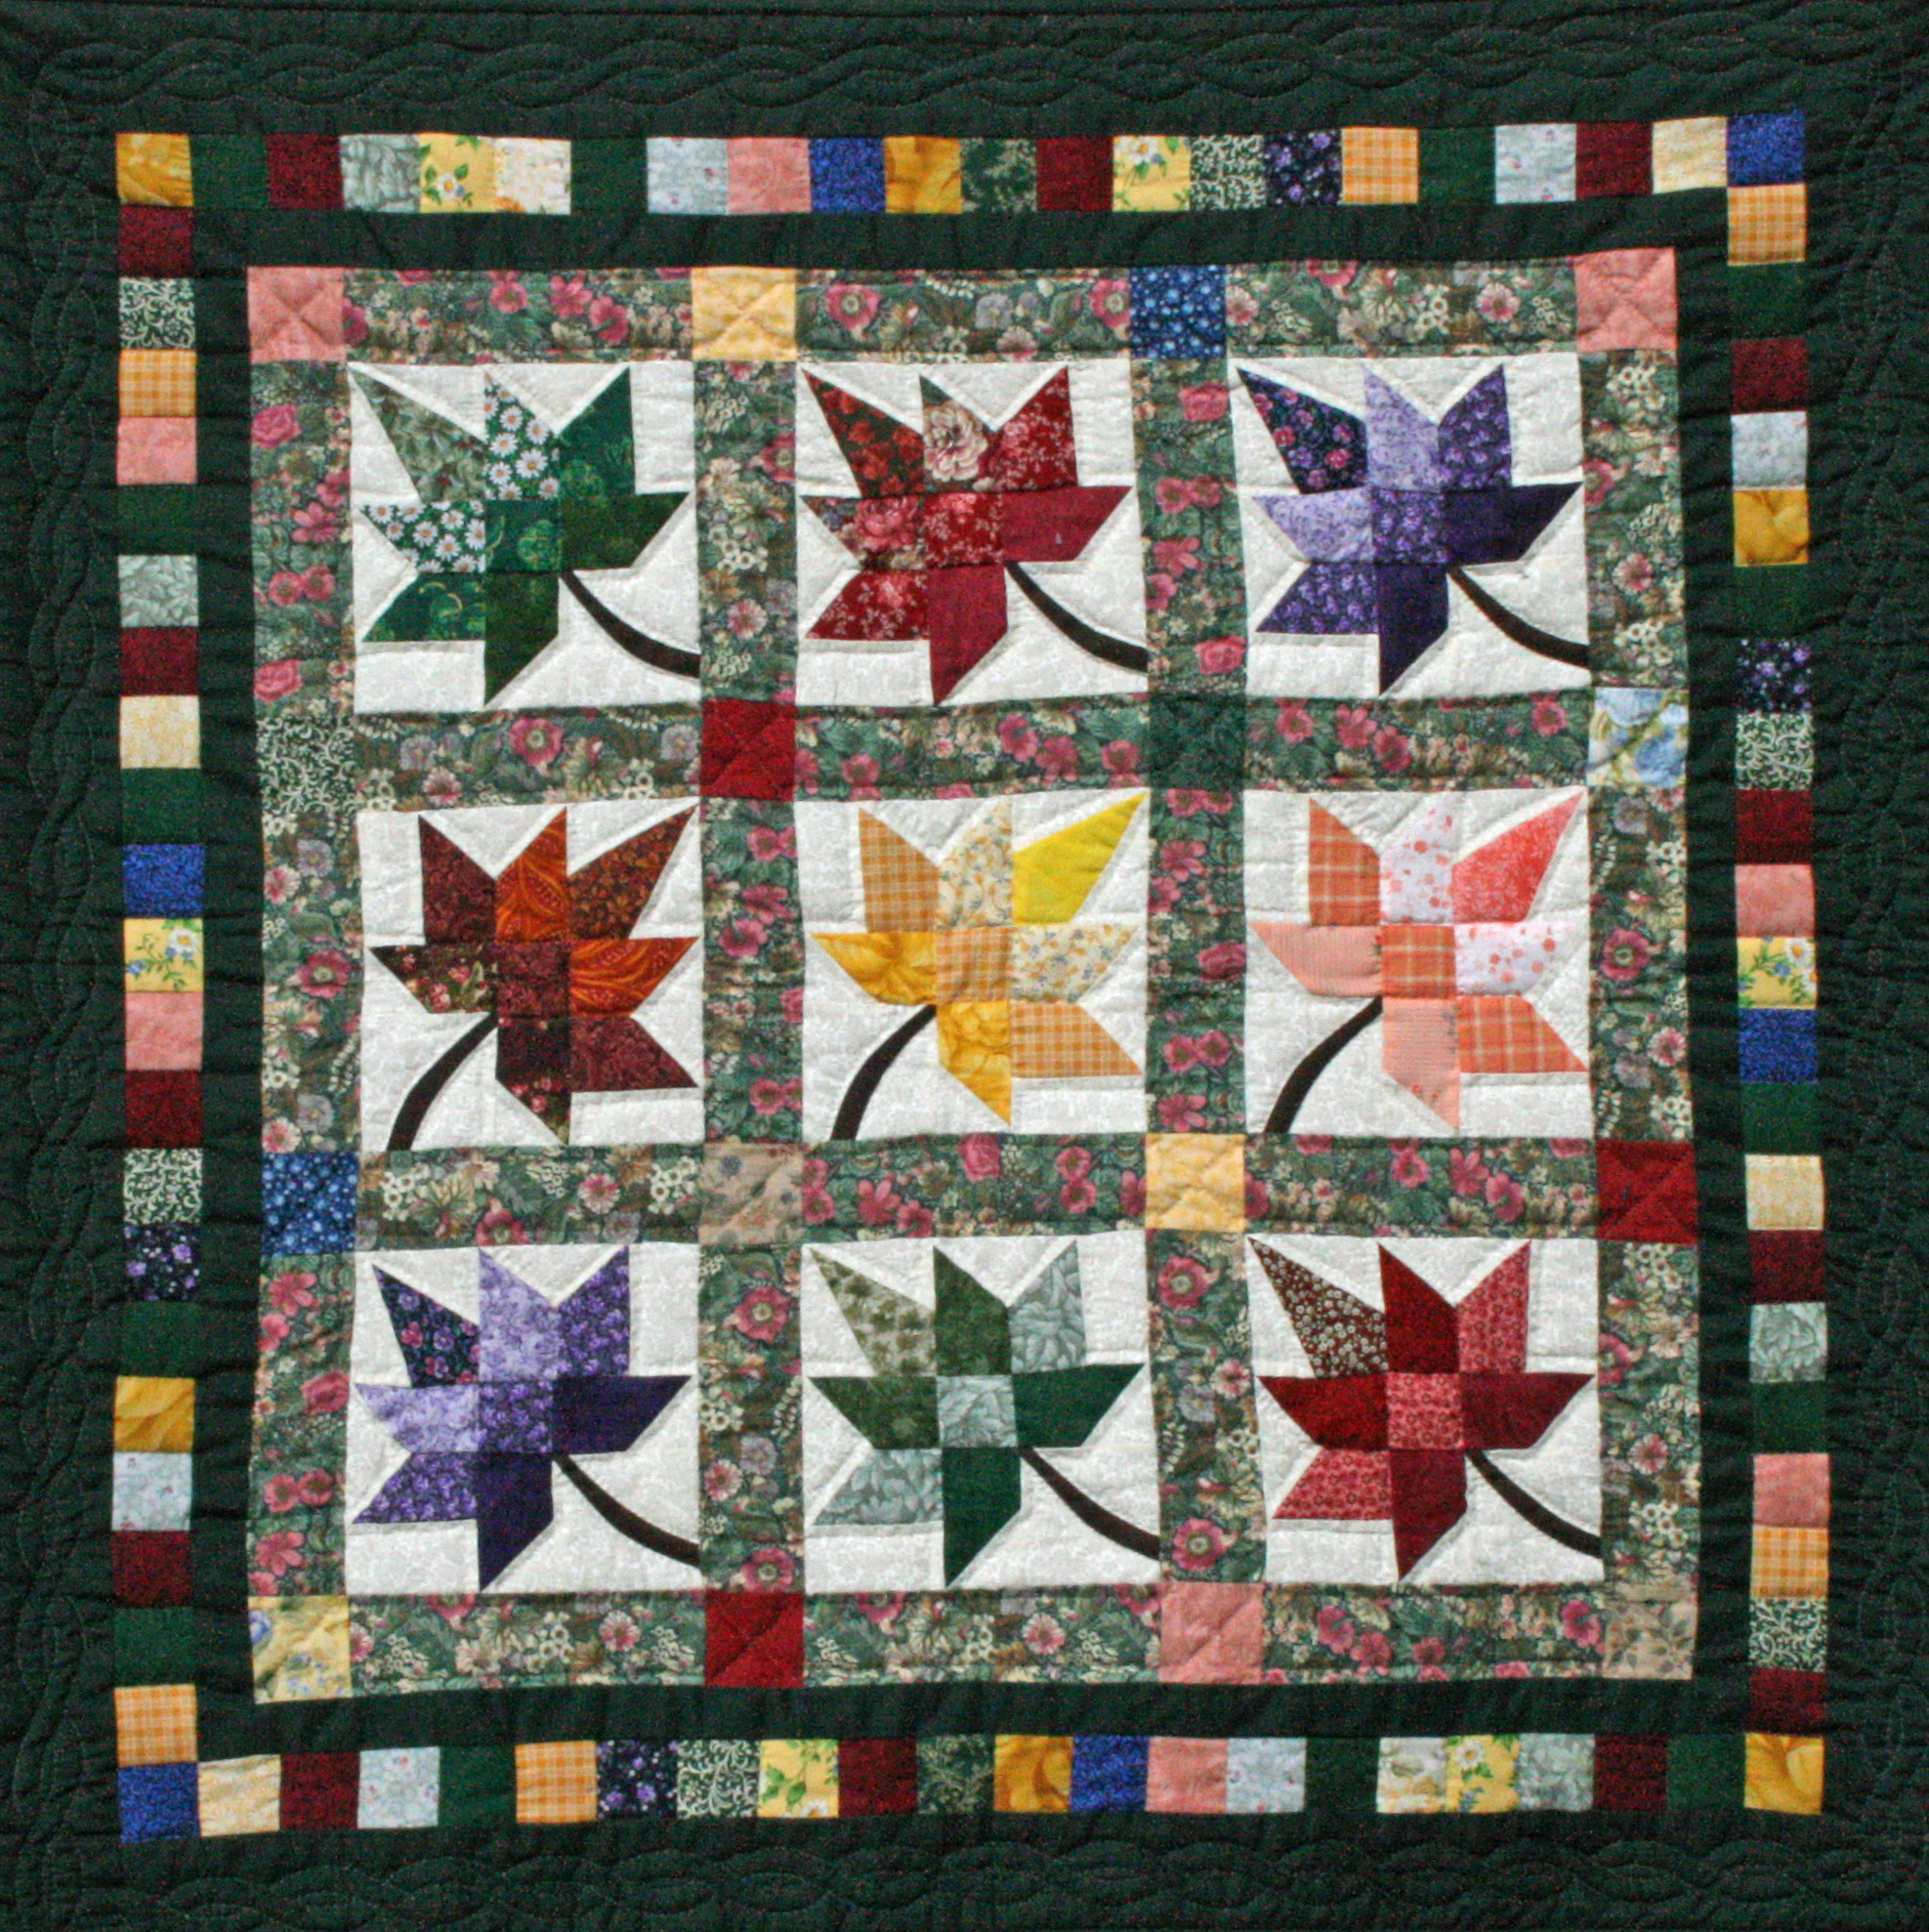 Amishquiltshop Net Provides Authentic Amish Quilts From